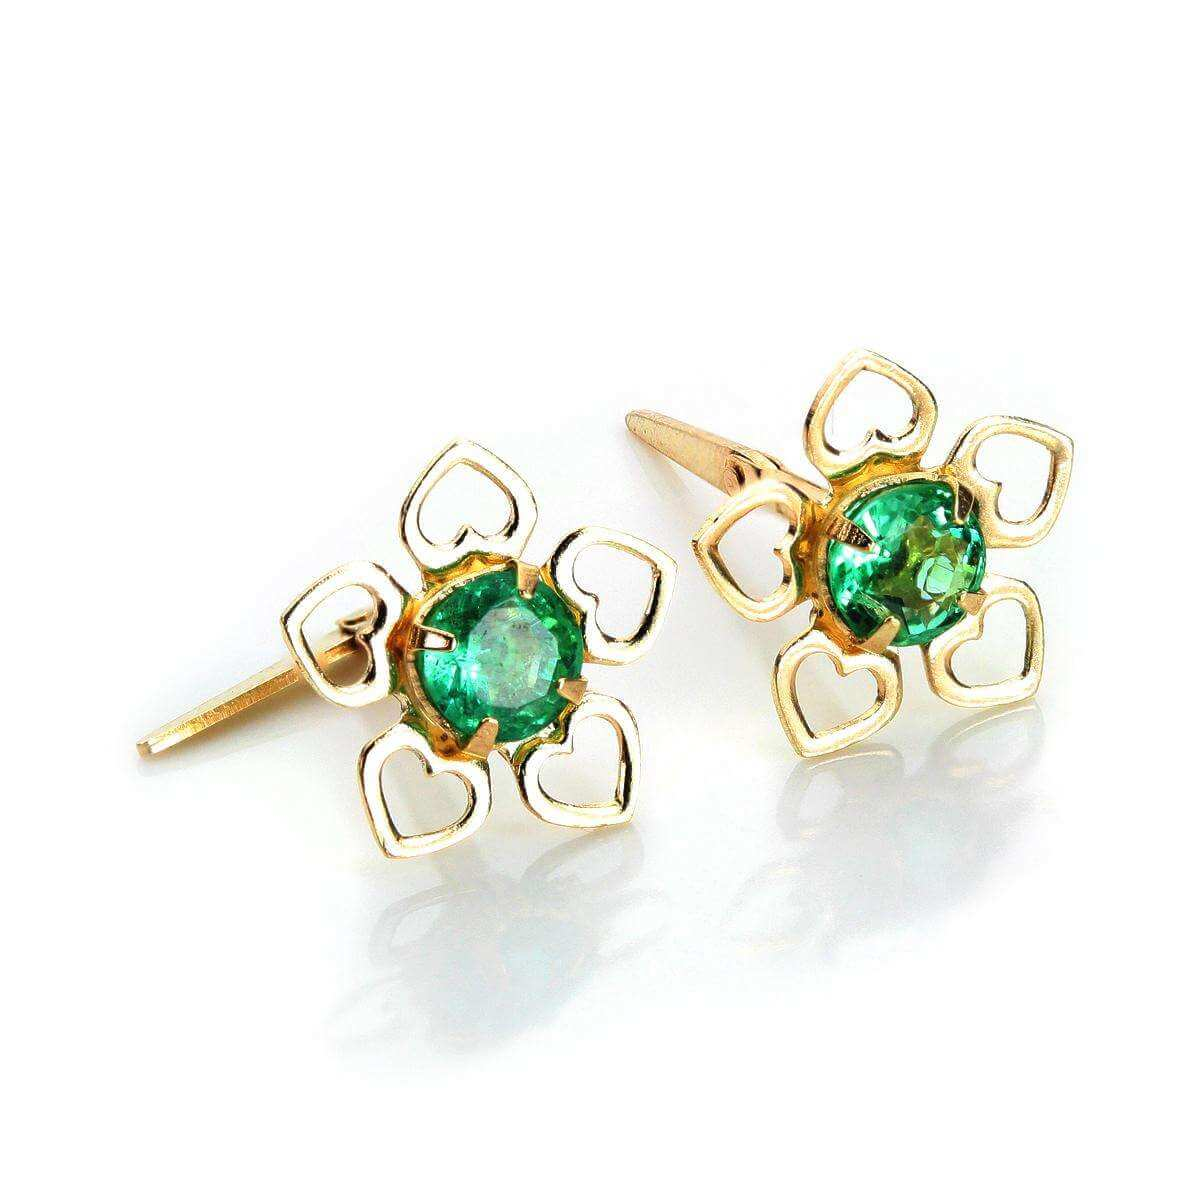 Andralok 9ct Yellow Gold Emerald 3.5mm Stud Earrings